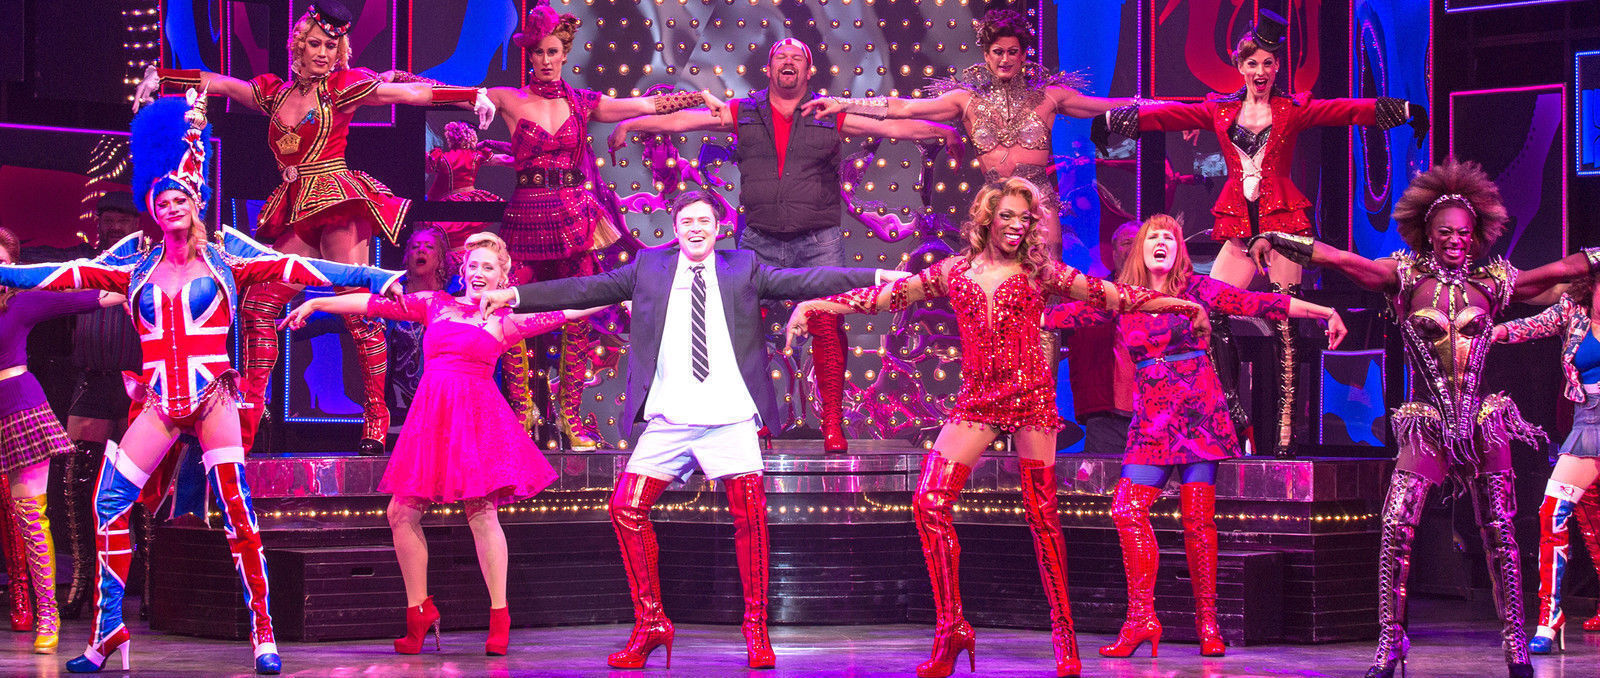 Kinky Boots Providence | Providence, RI | Providence Performing Arts Center | December 10, 2017